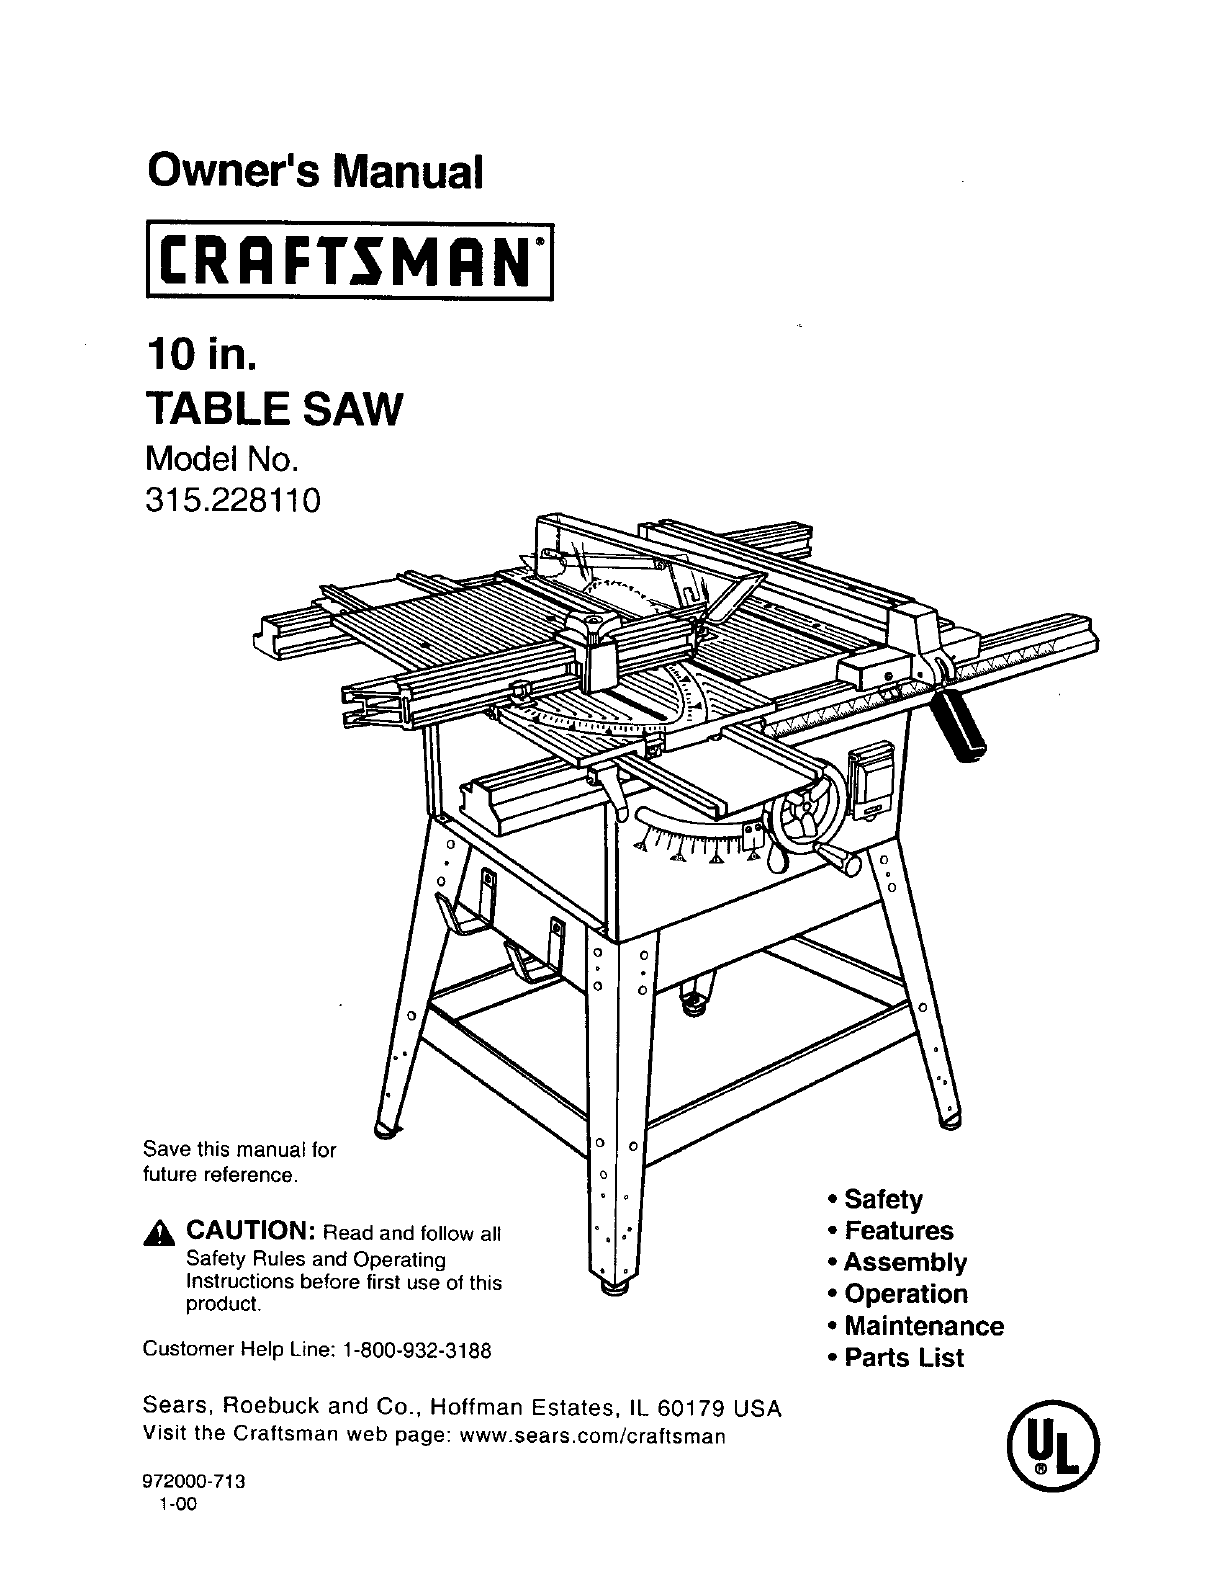 Craftsman saw user guide for 10 craftsman table saw manual